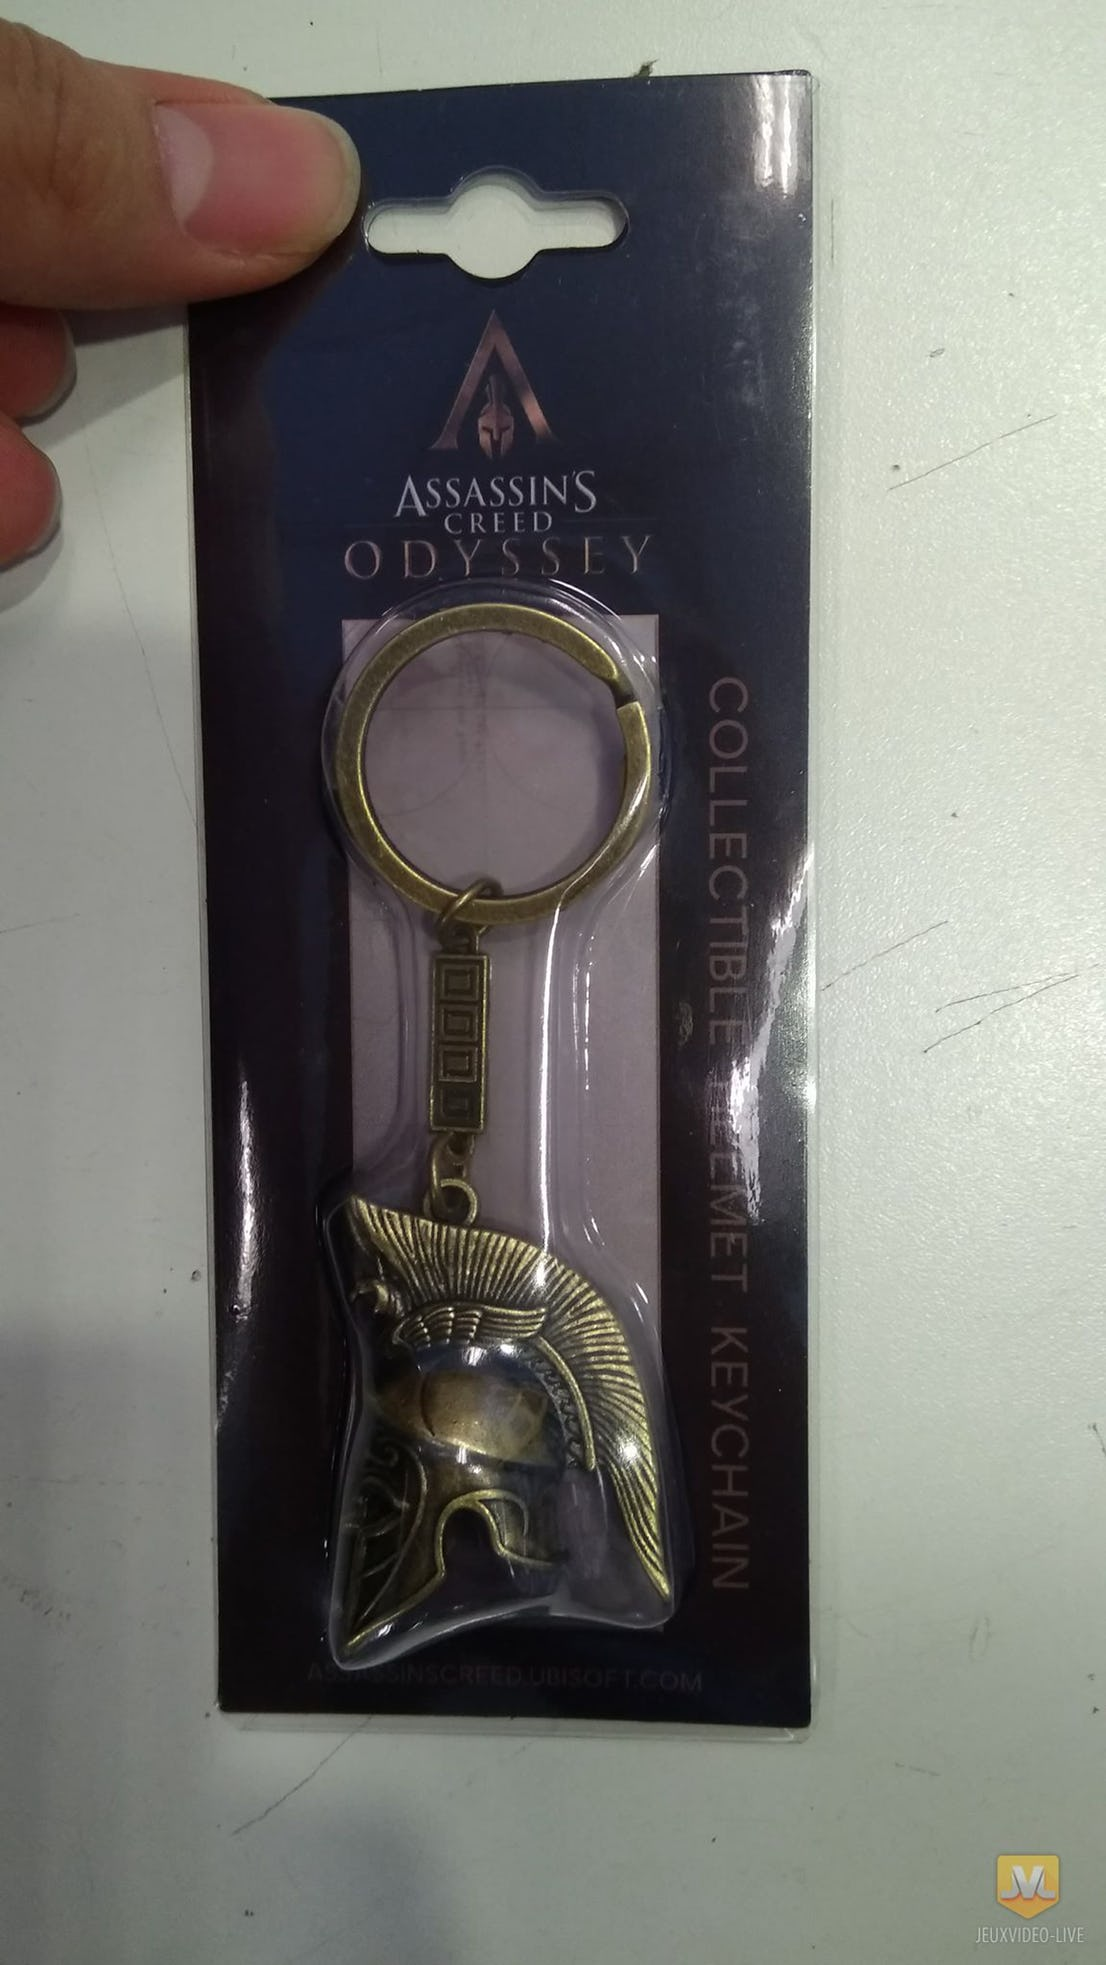 Assassins-Creed-Odyssey-Leaked-Keychain